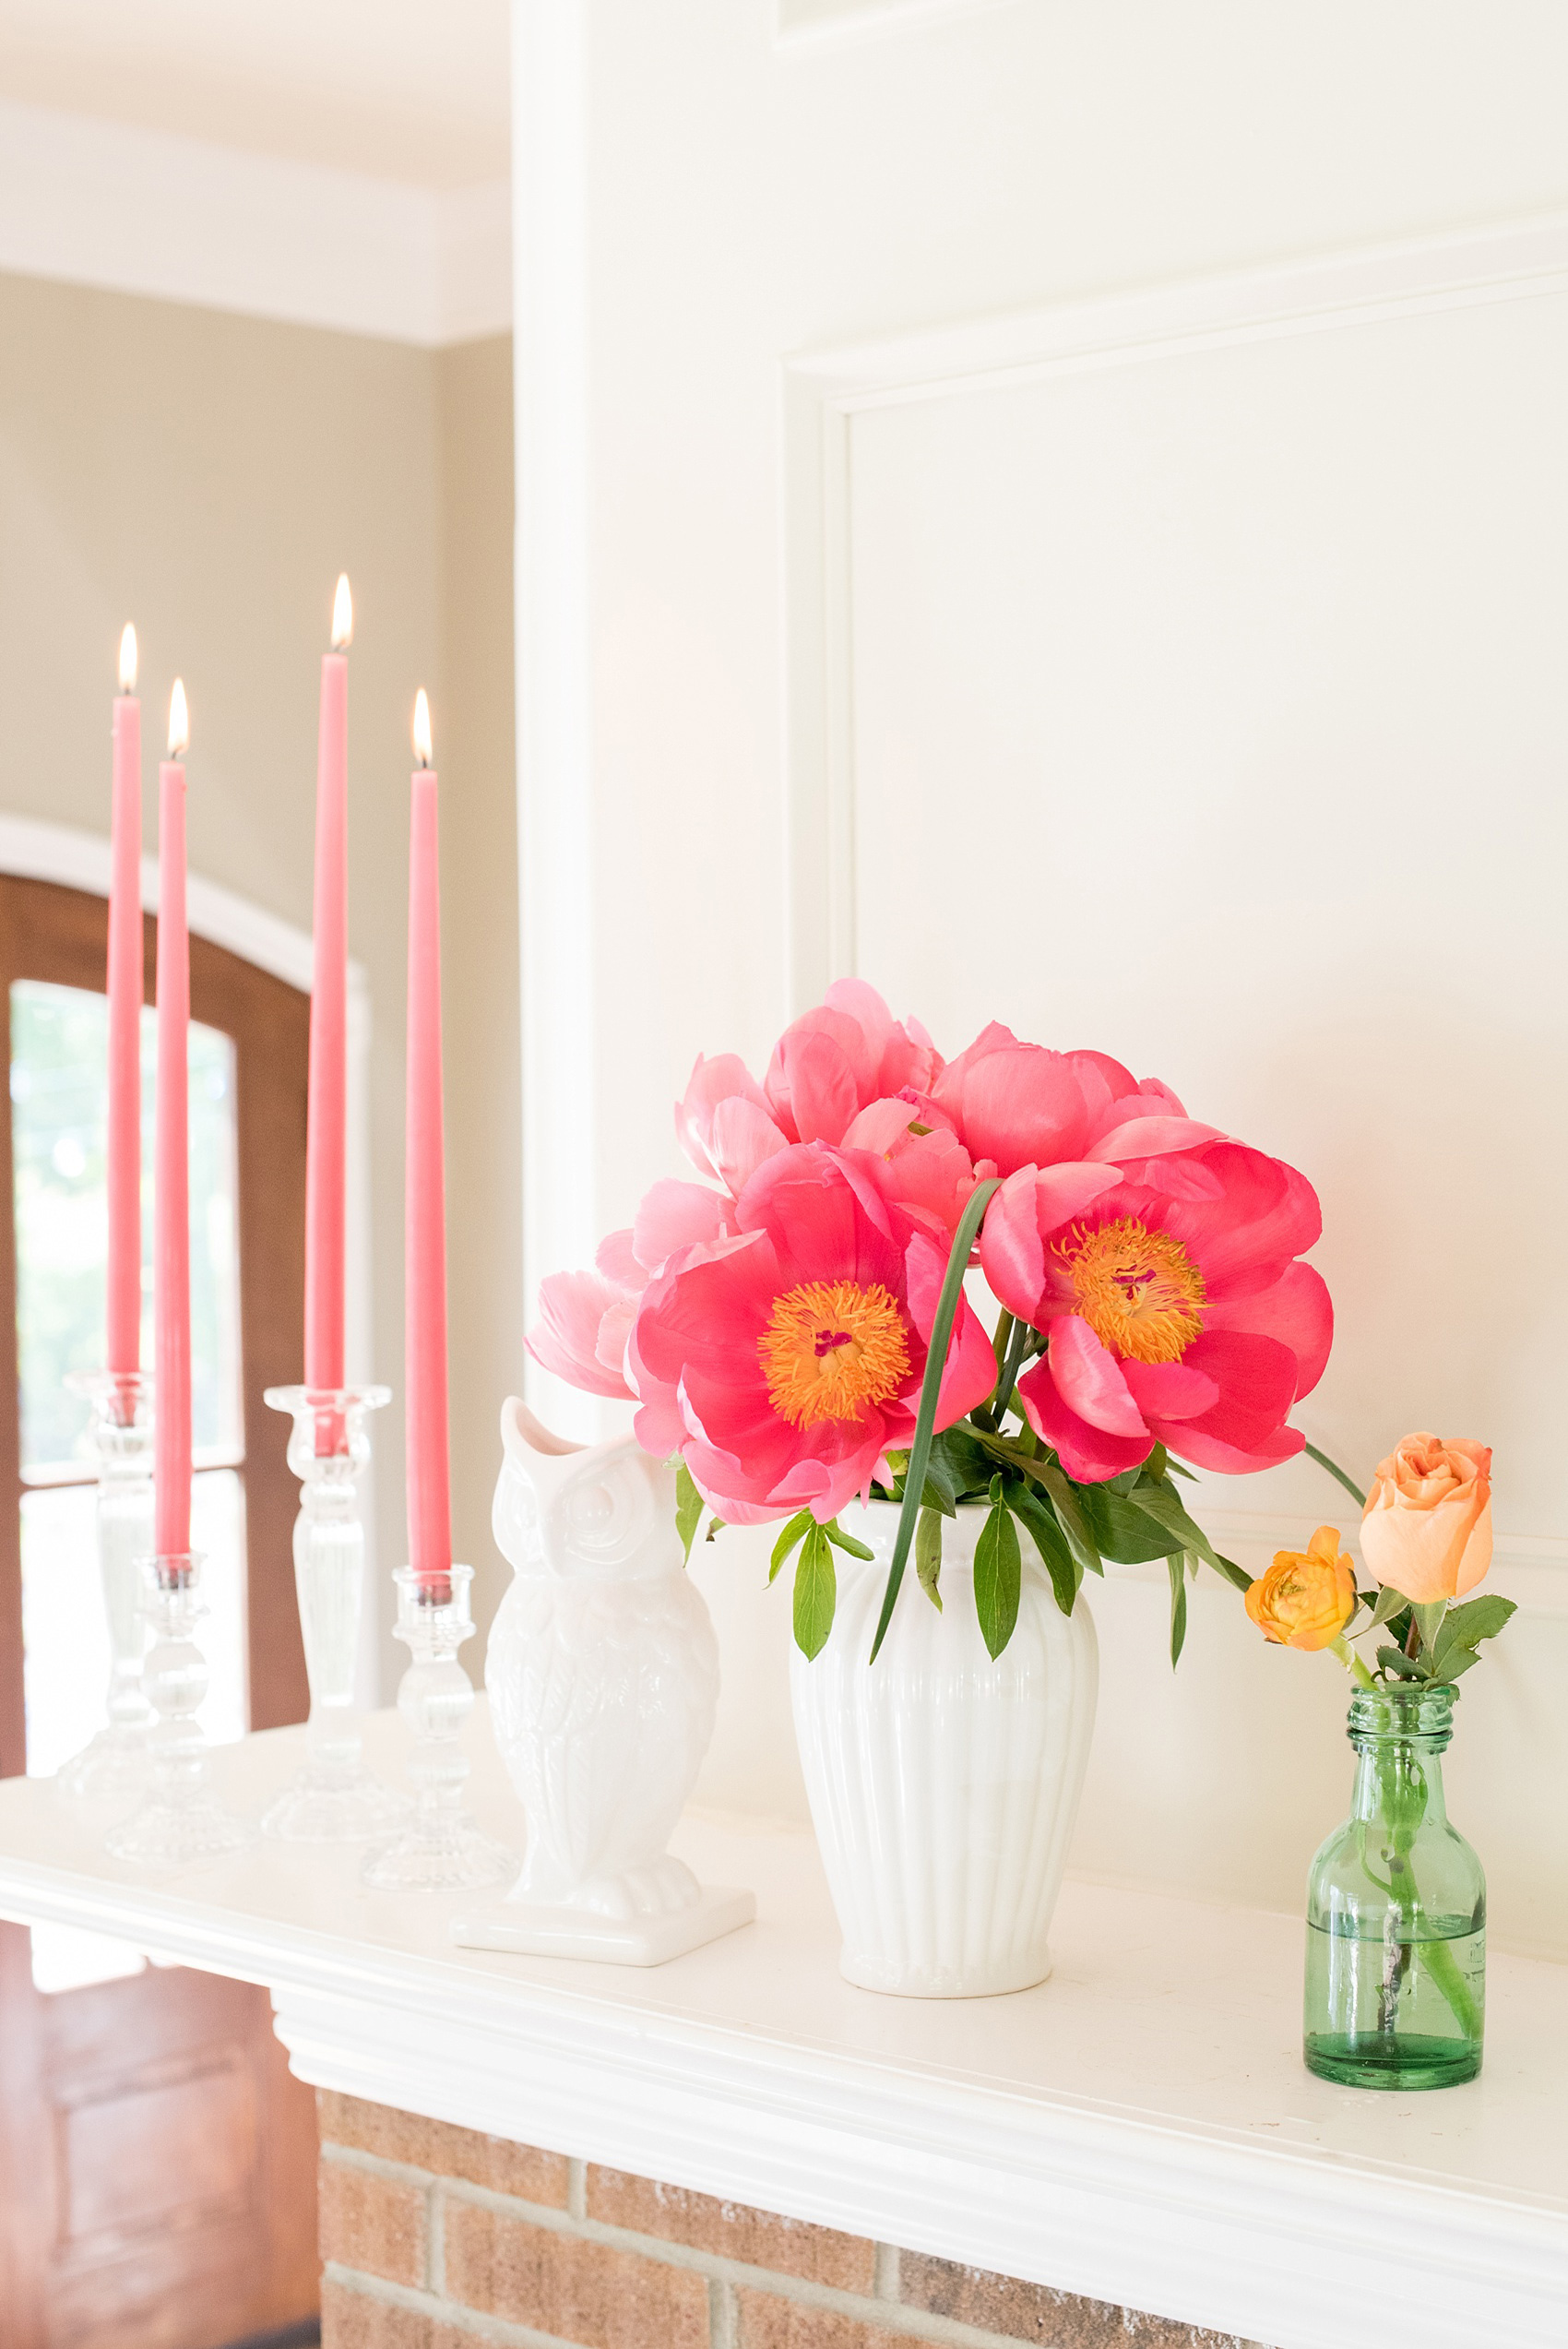 Mikkel Paige Photography wedding photo at The Bradford, NC. Pink candles and peonies adorn the fireplace mantle.